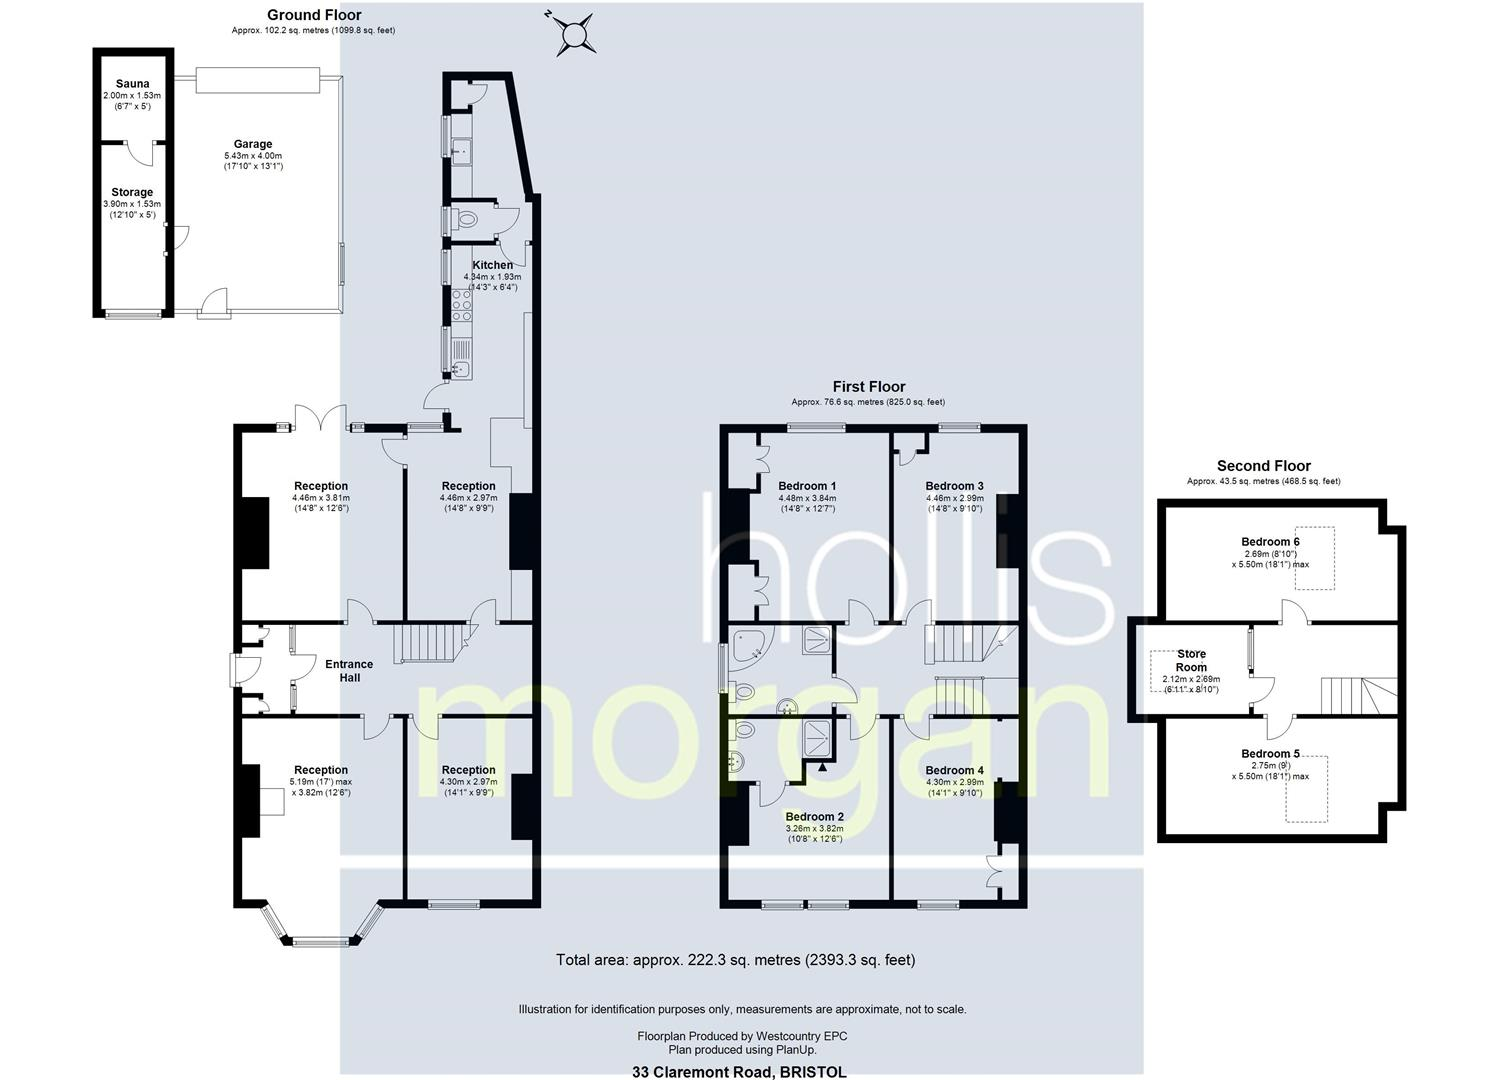 Floorplans For Claremont Road, Bishopston